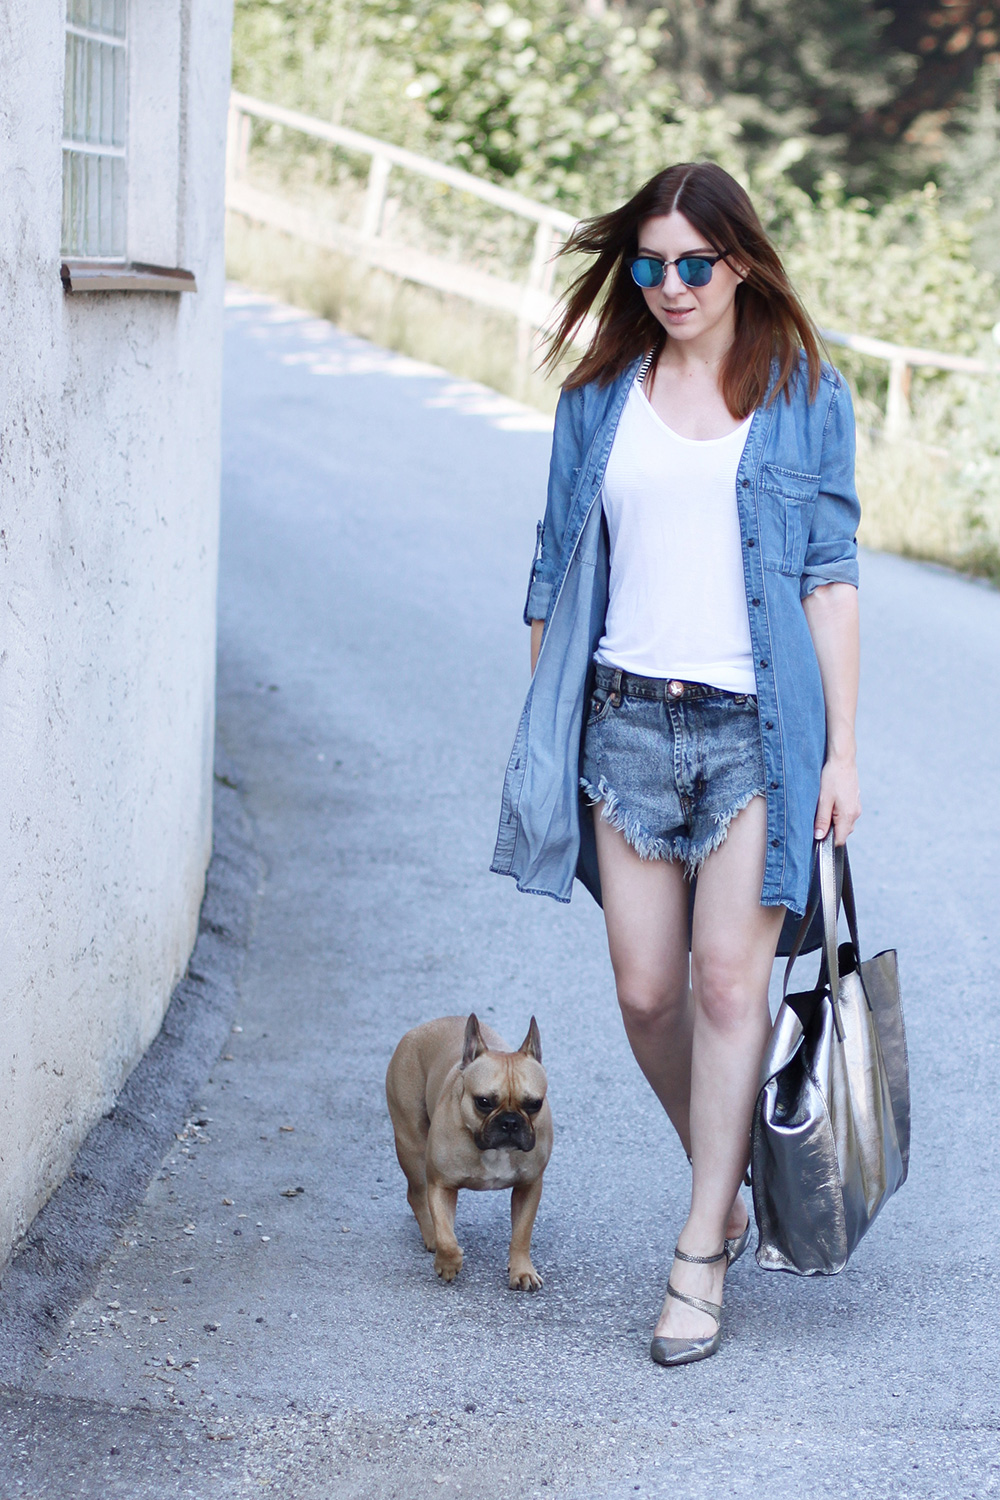 who is mocca, blogger, tirol, innsbruck, tirolblog, denim, one teaspoon, shorts, jeanskleid, metallic heels, metallic bag, binabags, frenchie, whoismocca.com, street style tirol